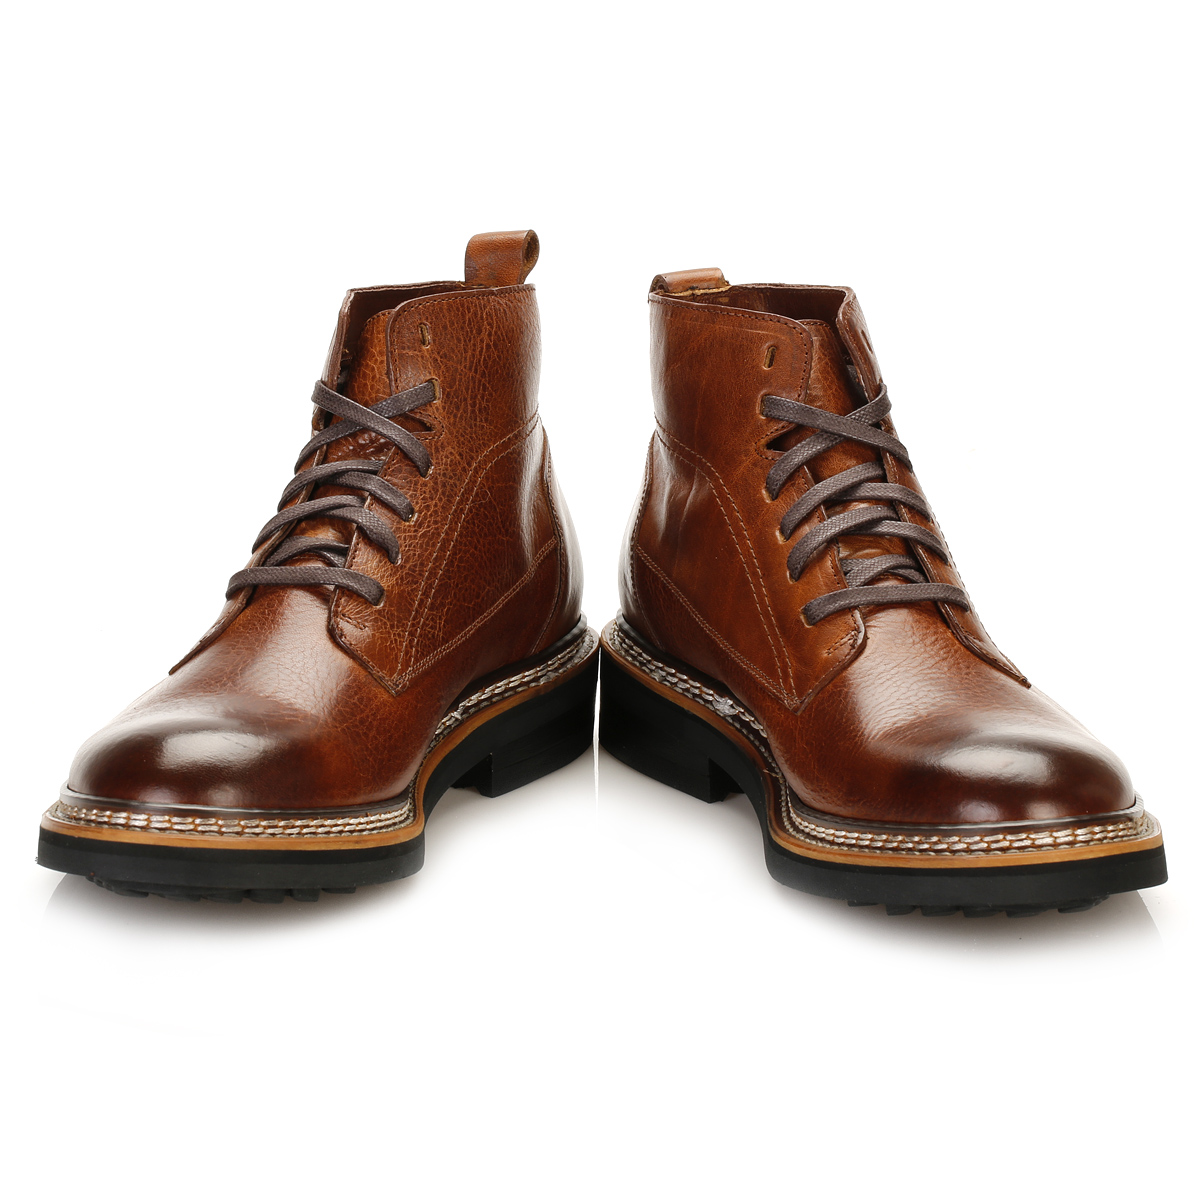 Brown Mens Leather Boots Sale: Save Up to 70% Off! Shop ketauan.ga's huge selection of Brown Leather Boots for Men - Over 1, styles available. FREE Shipping & Exchanges, and a .